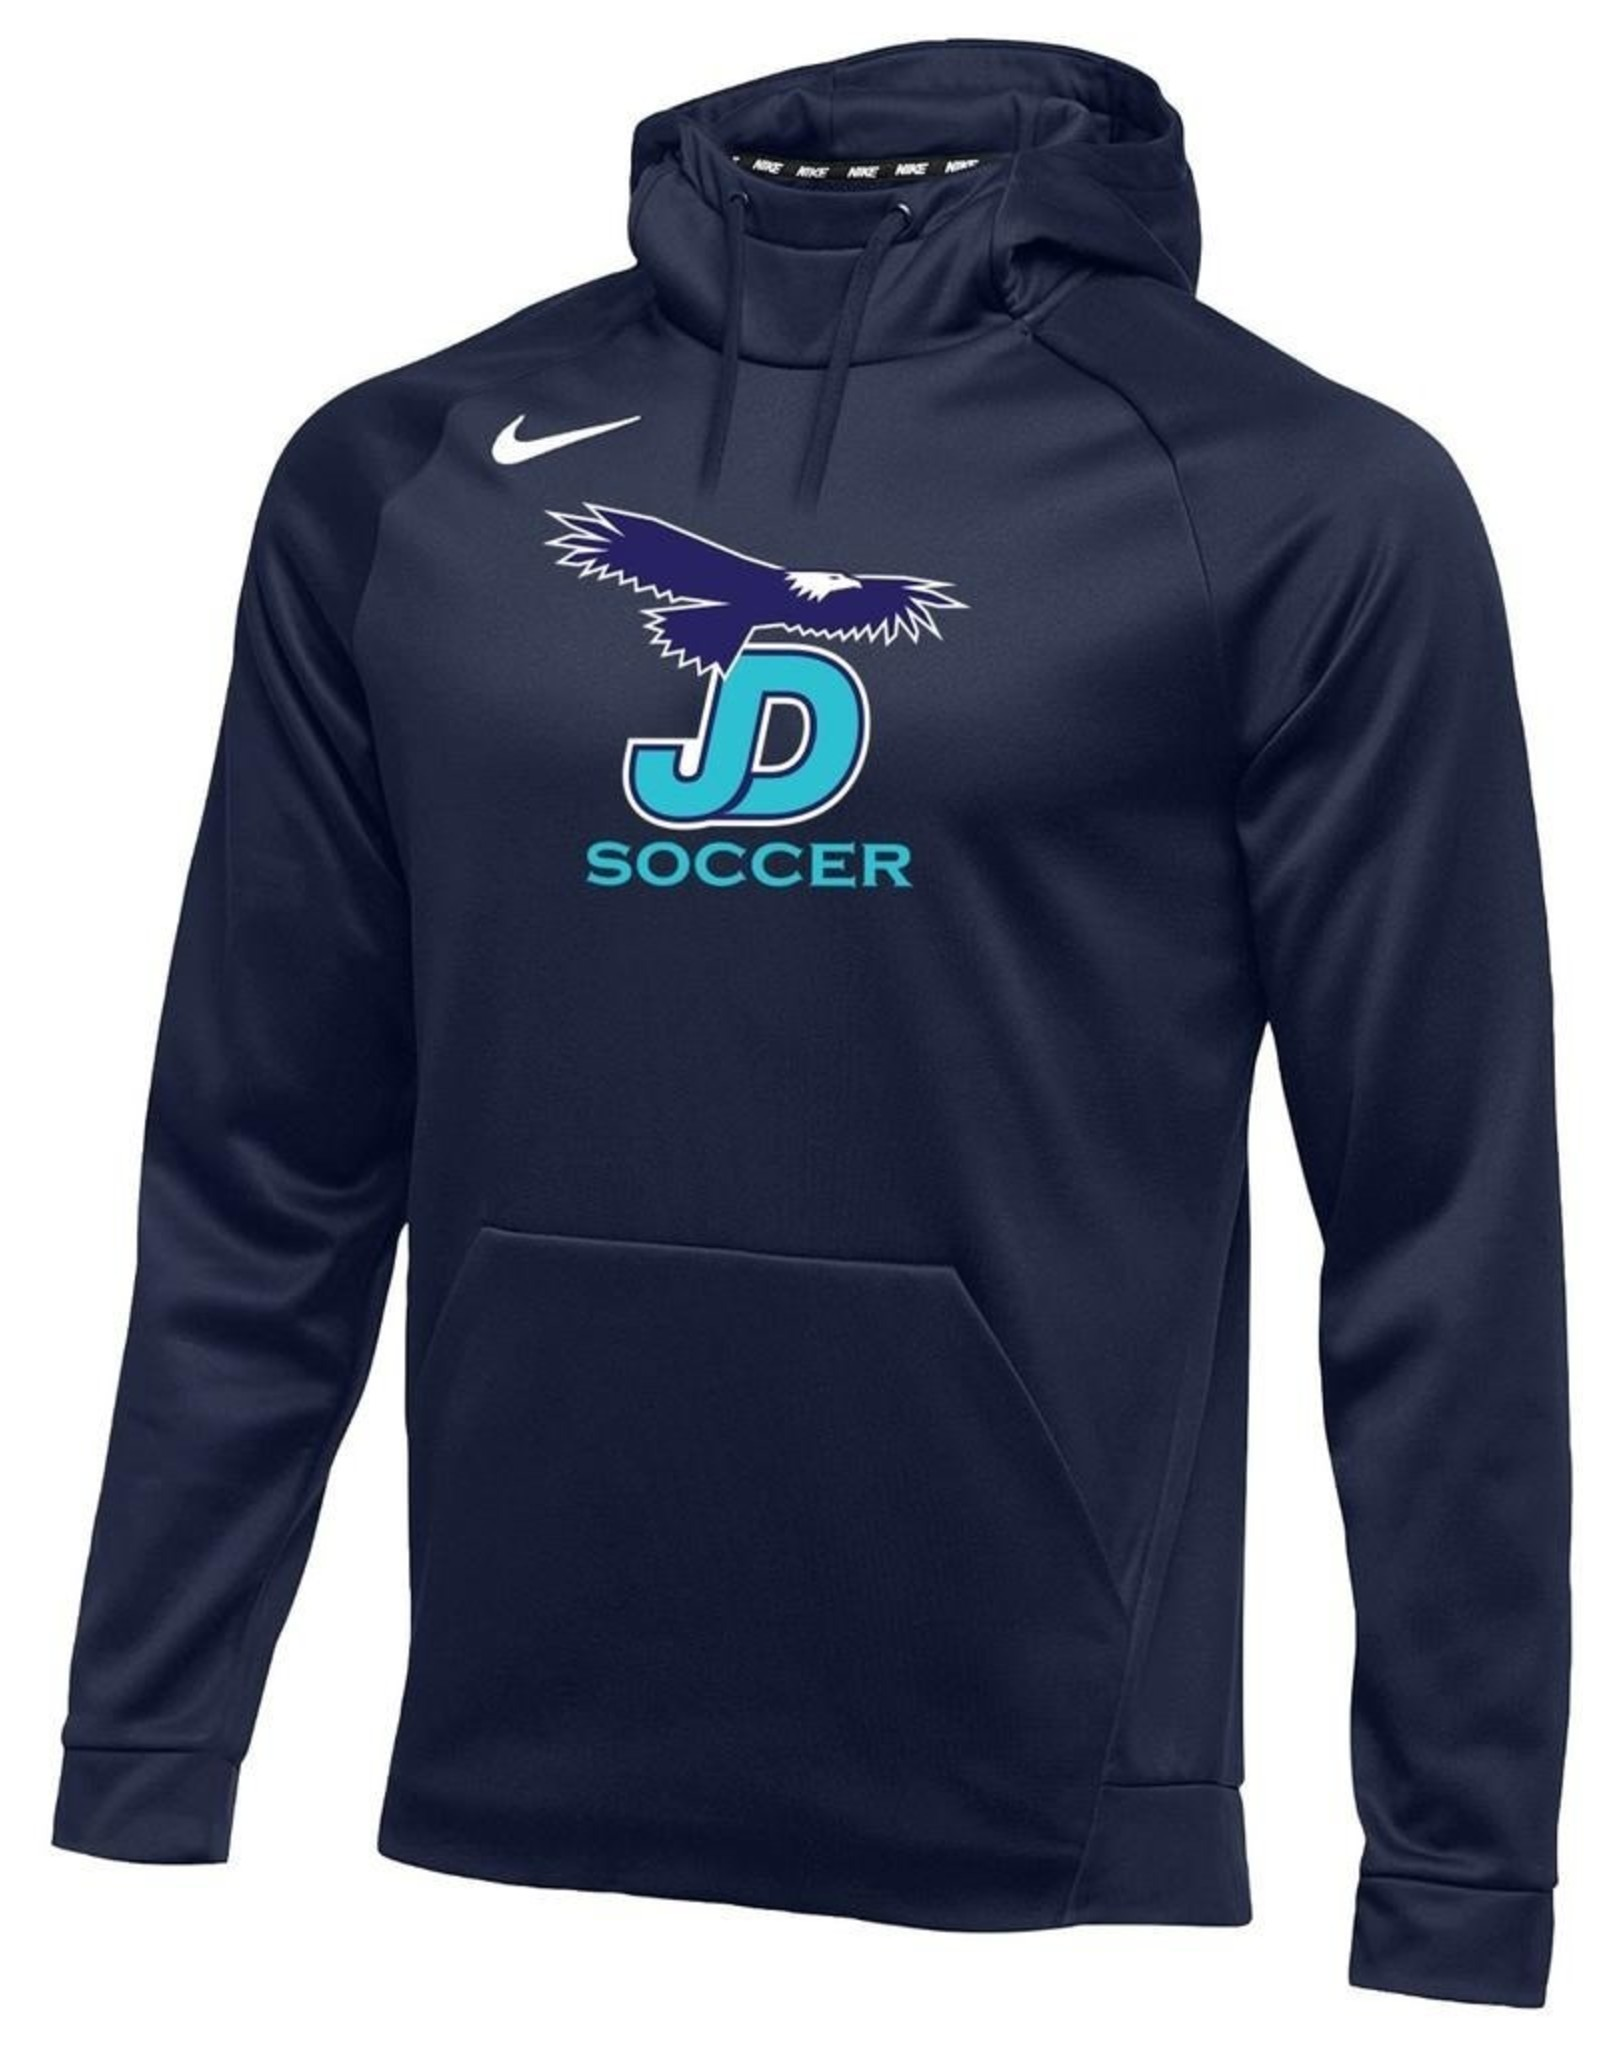 NON-UNIFORM JD Boys Soccer, Nike Therma Pullover Hoodie